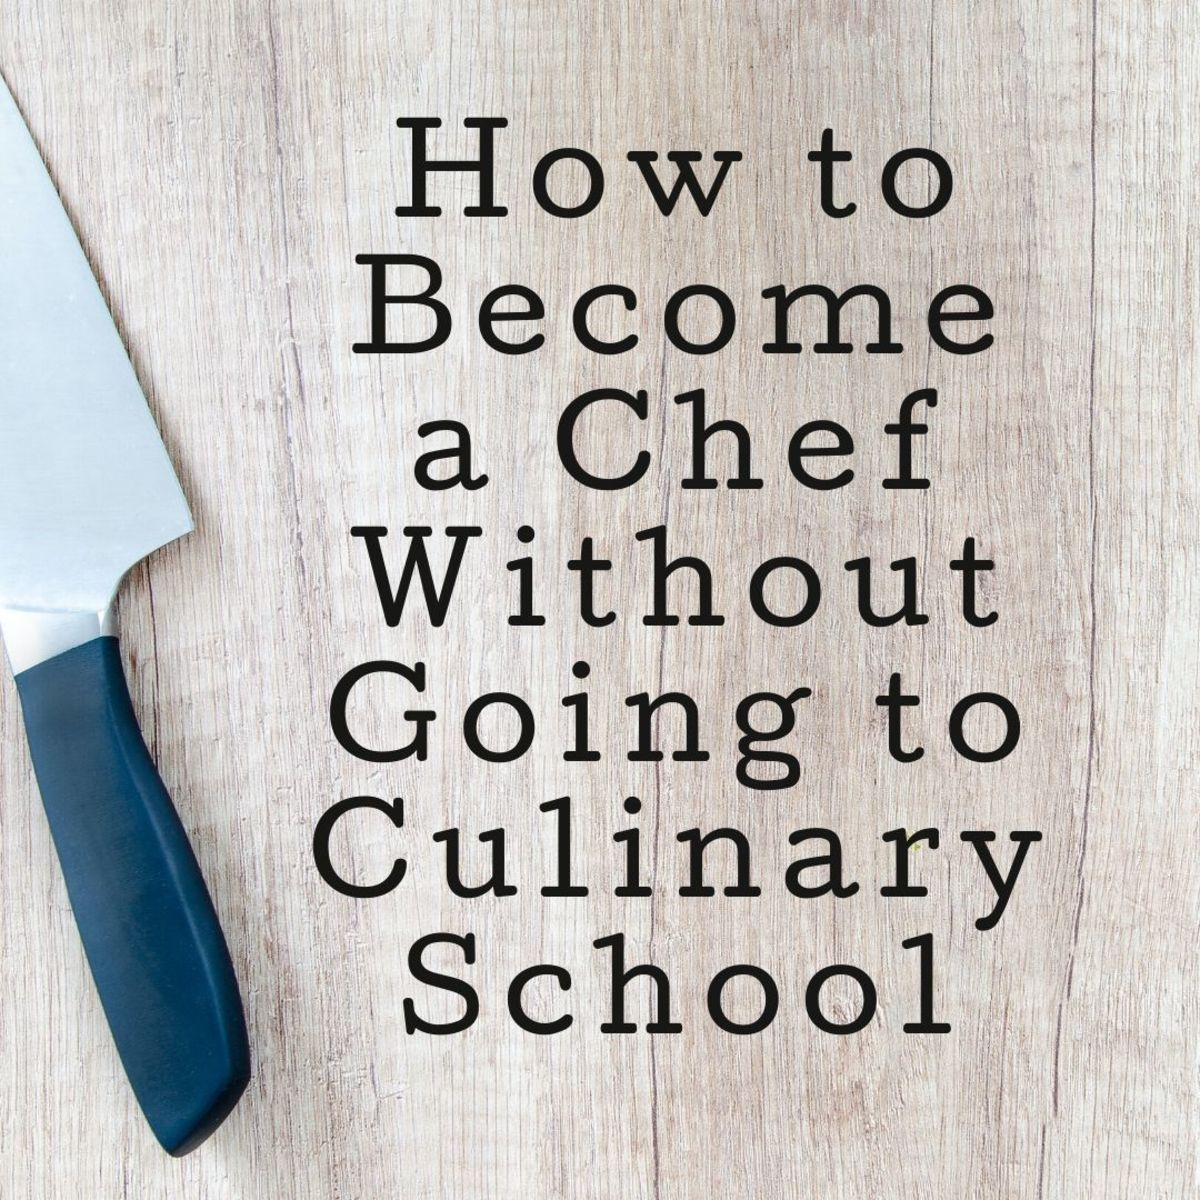 Everything you need to know about becoming a chef without going to culinary school